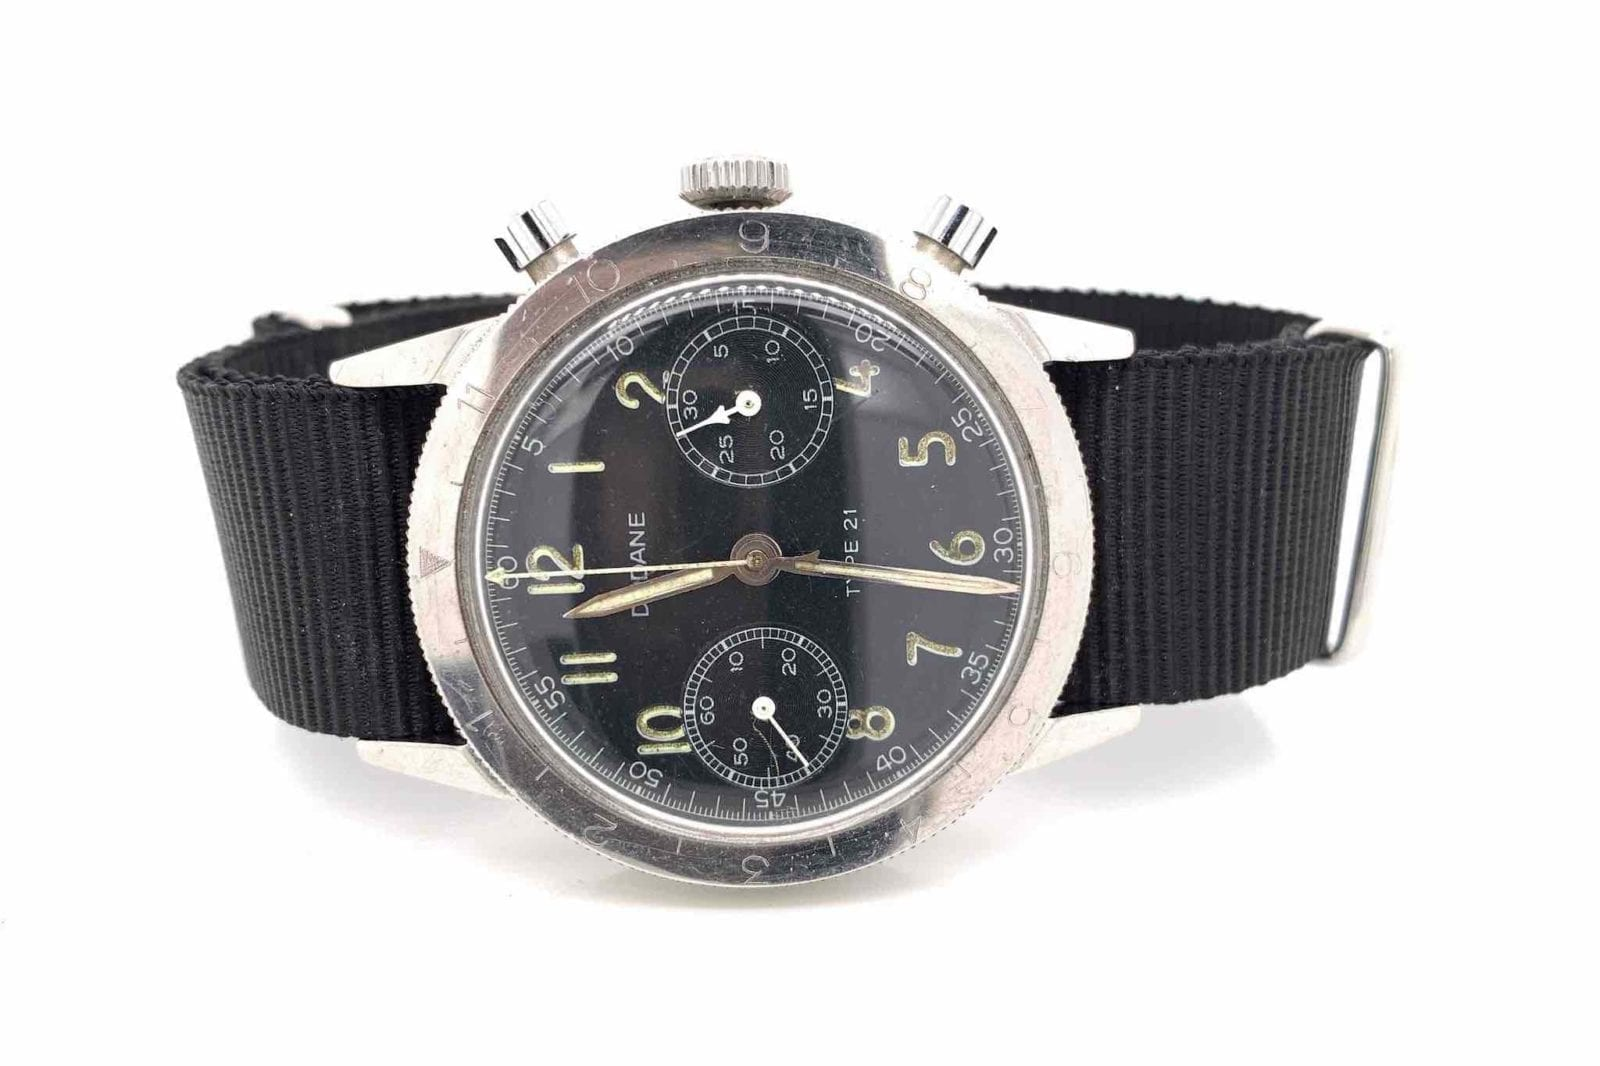 Montre Type 21 Chrono type vintage 1960